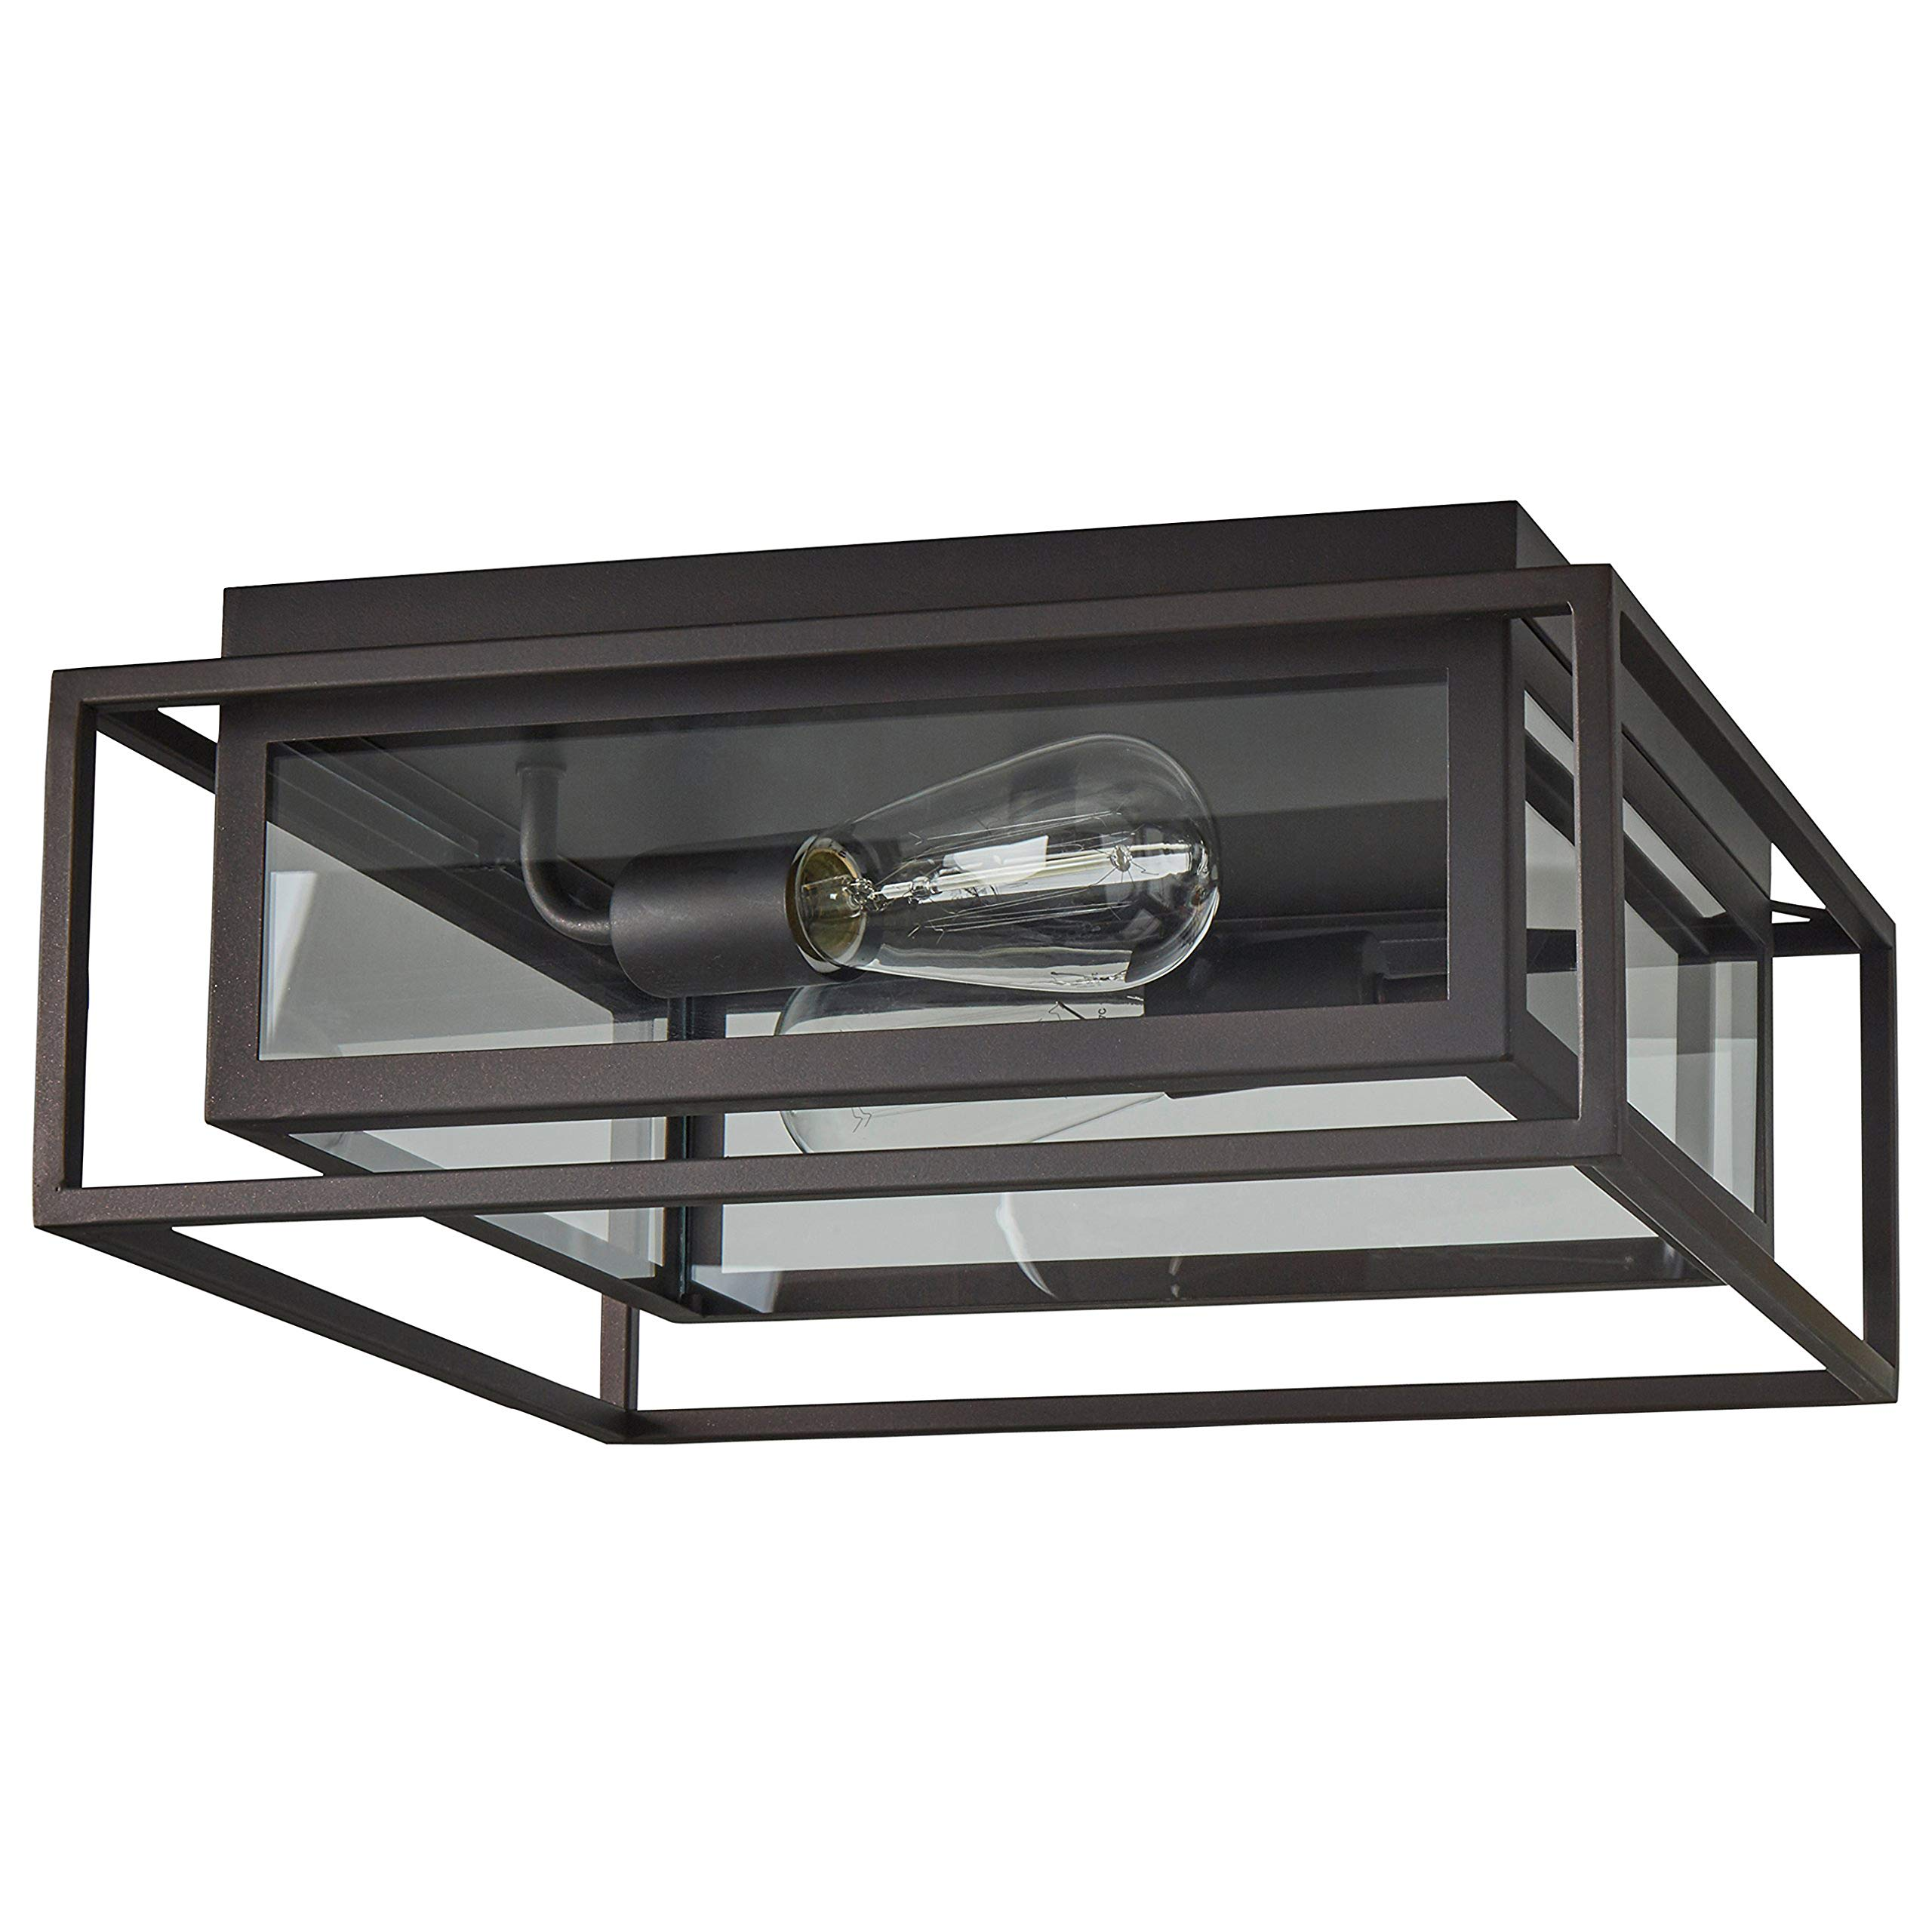 Stone & Beam Industrial Flush Mount Light With Bulbs, 6.5''H, Oil-Rubbed Bronze